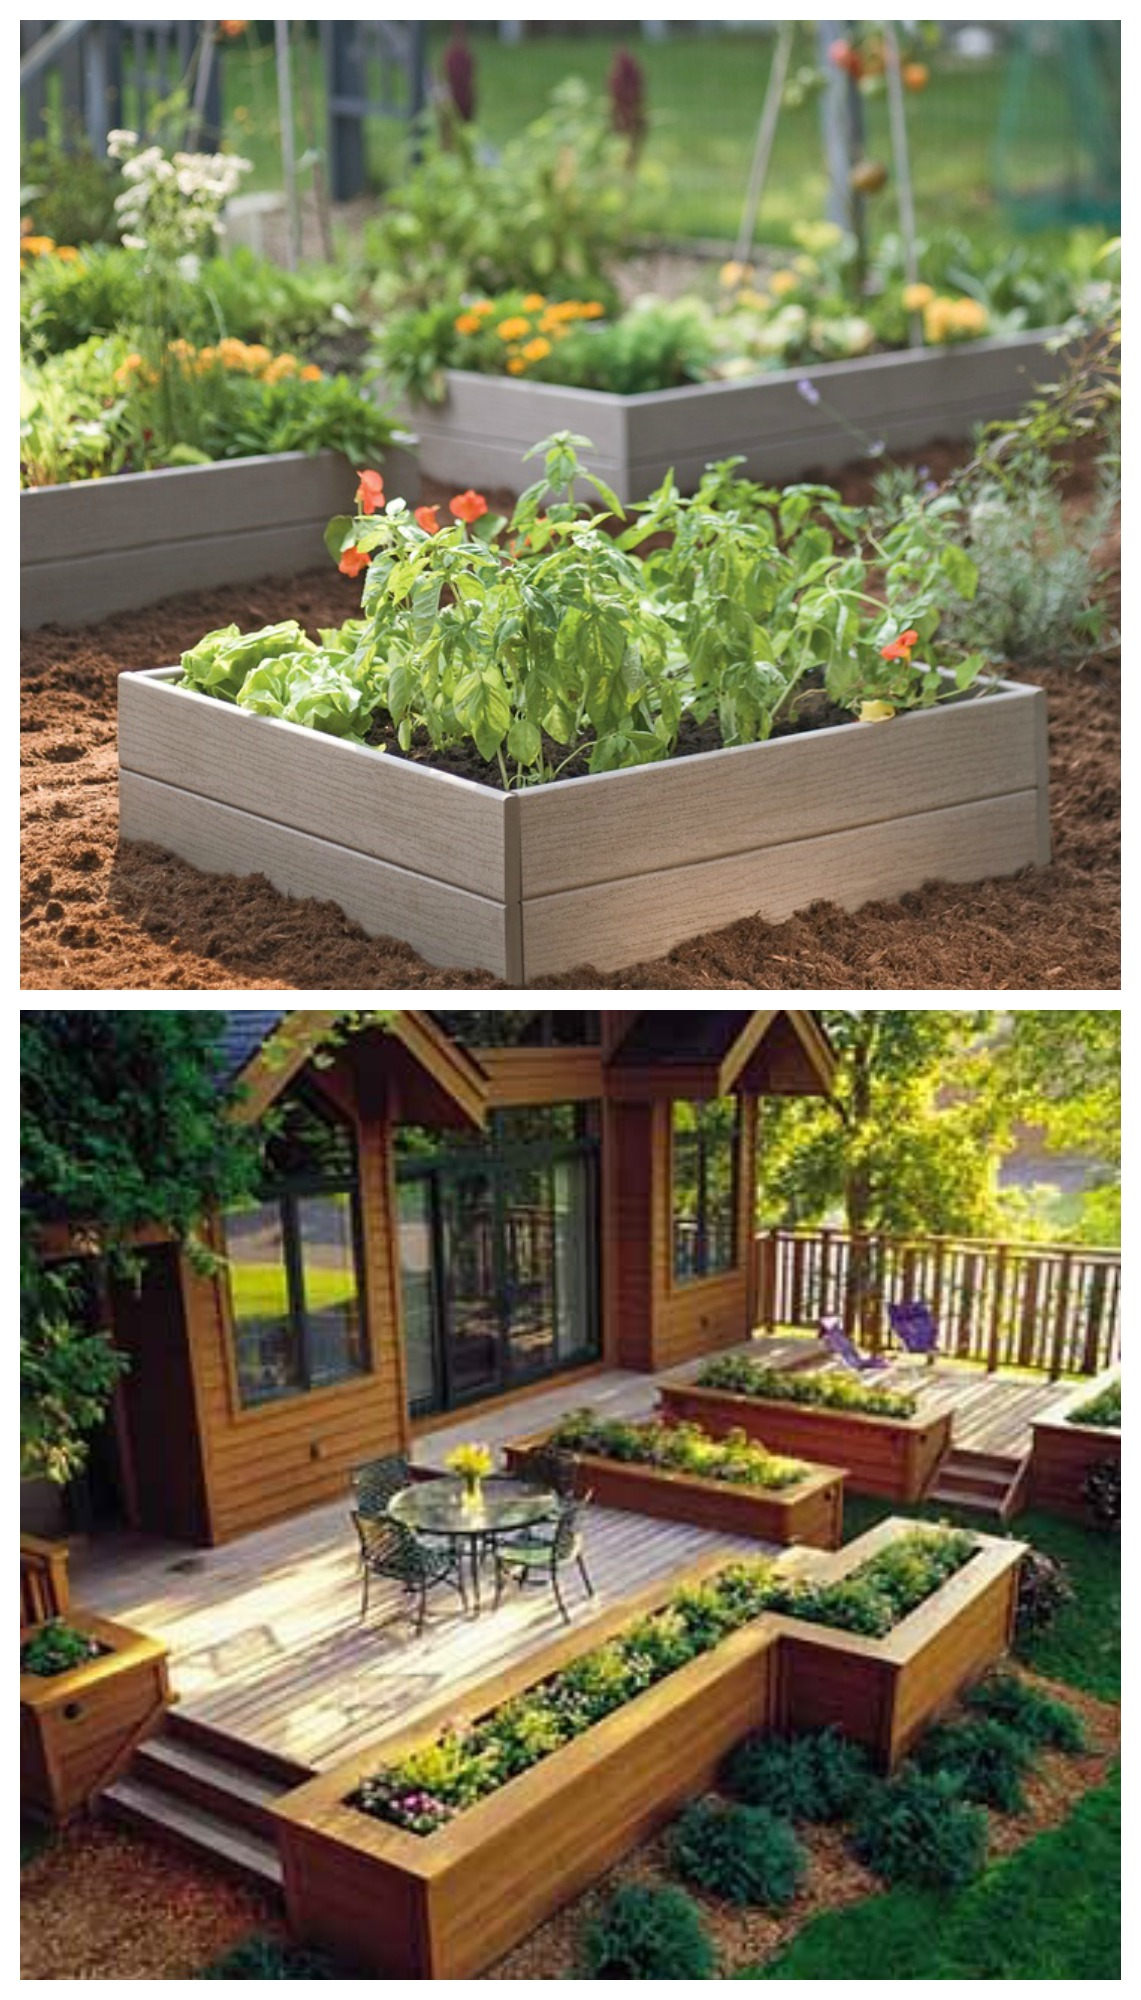 just love how perfect the raised garden beds look